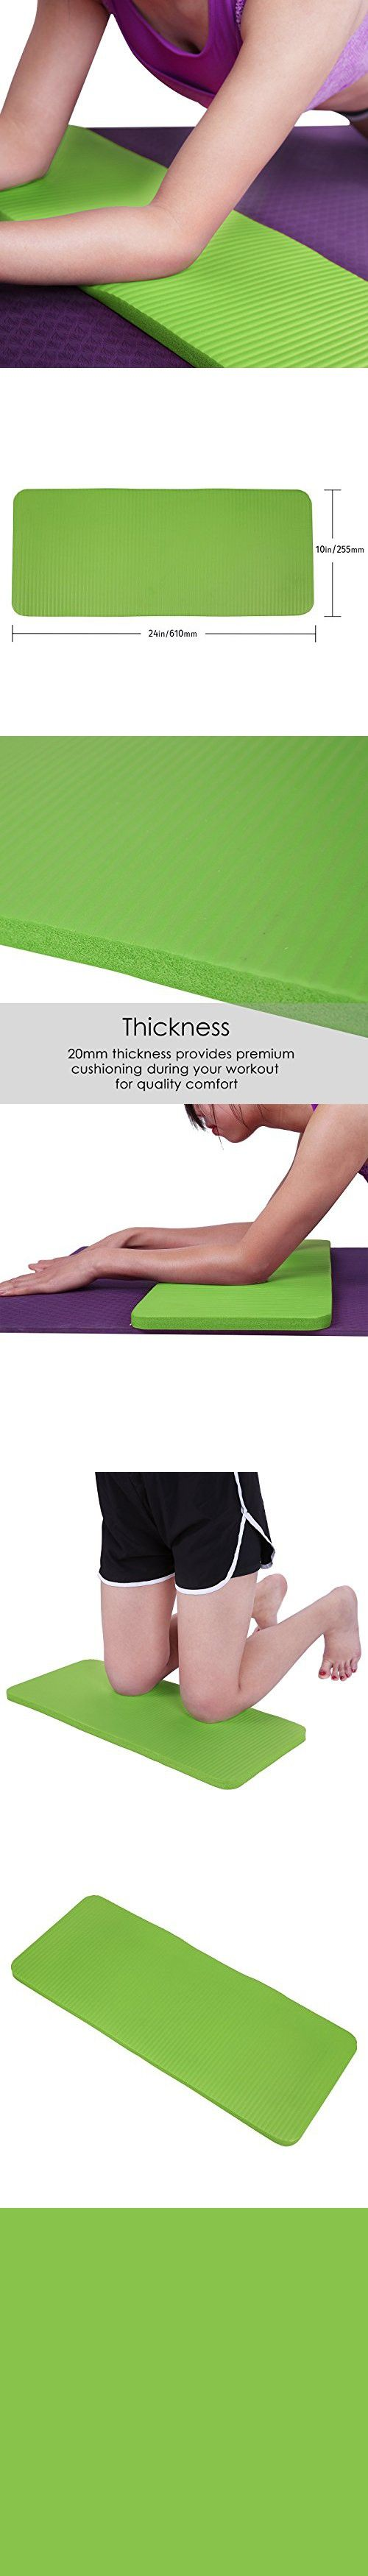 11a0b8e695d HDE Yoga Knee Pad 20mm Thick Anti-Slip Workout Mat for Yoga Pilates Fitness  and Exercise Pressure Point Relief Pain Free 24